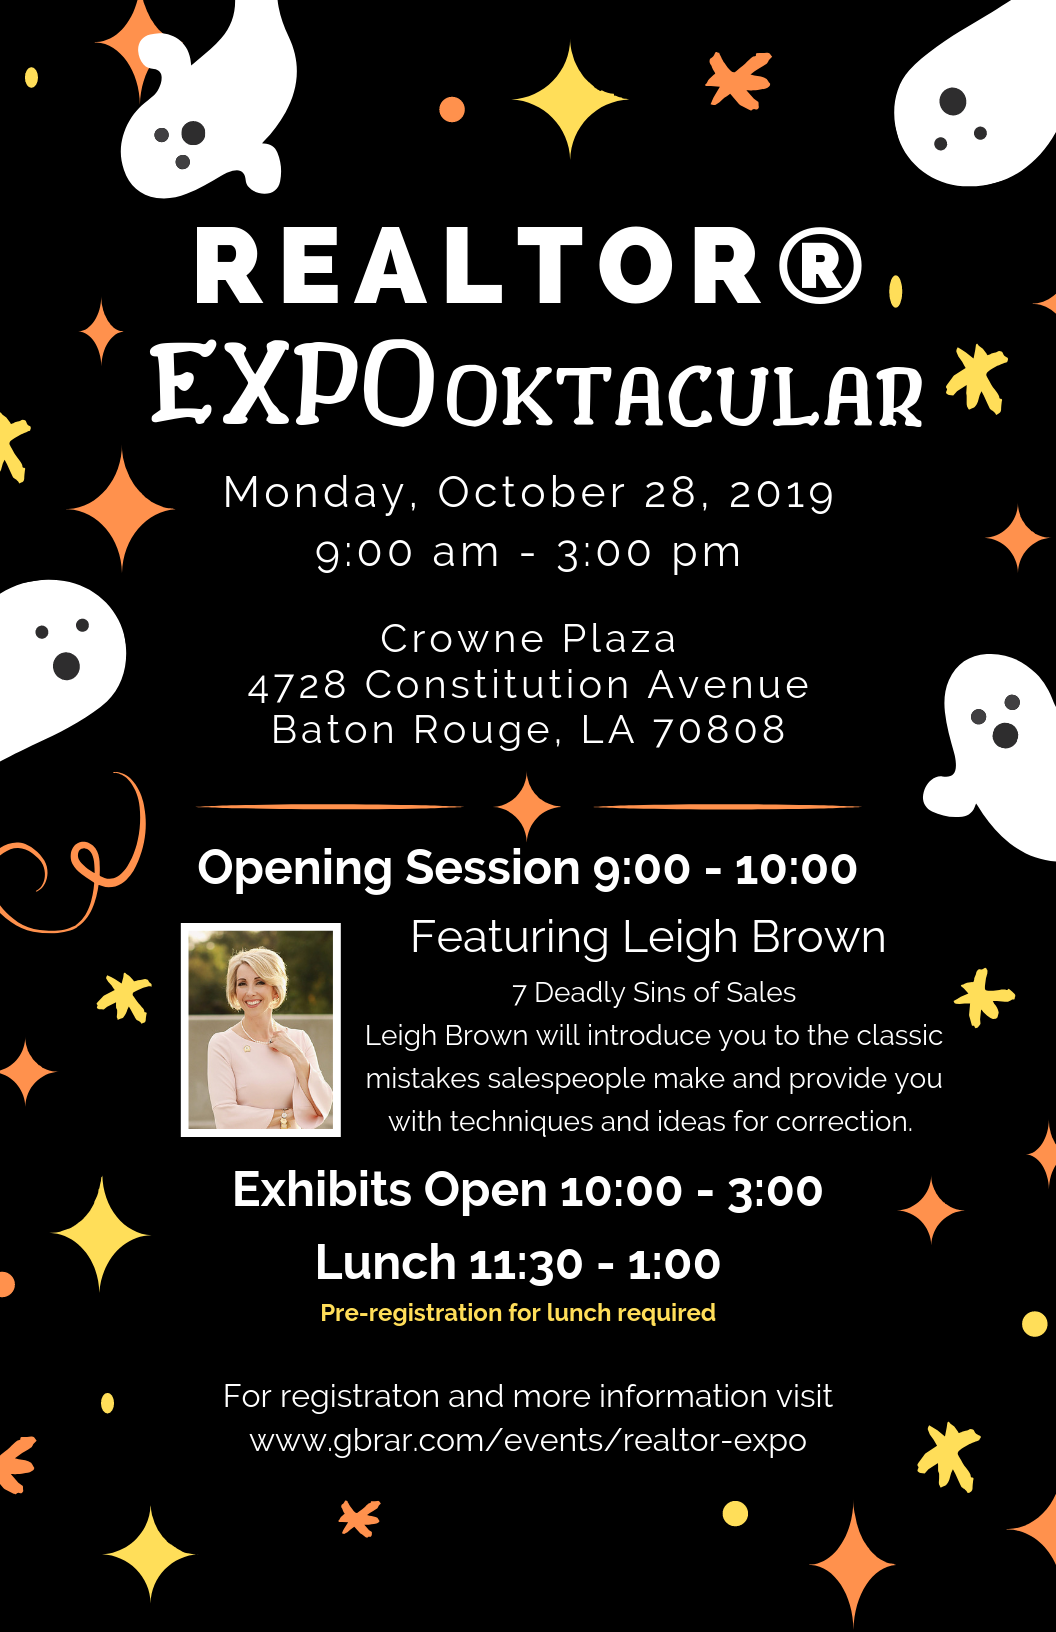 REALTOR Expo 2019 Flyer.png